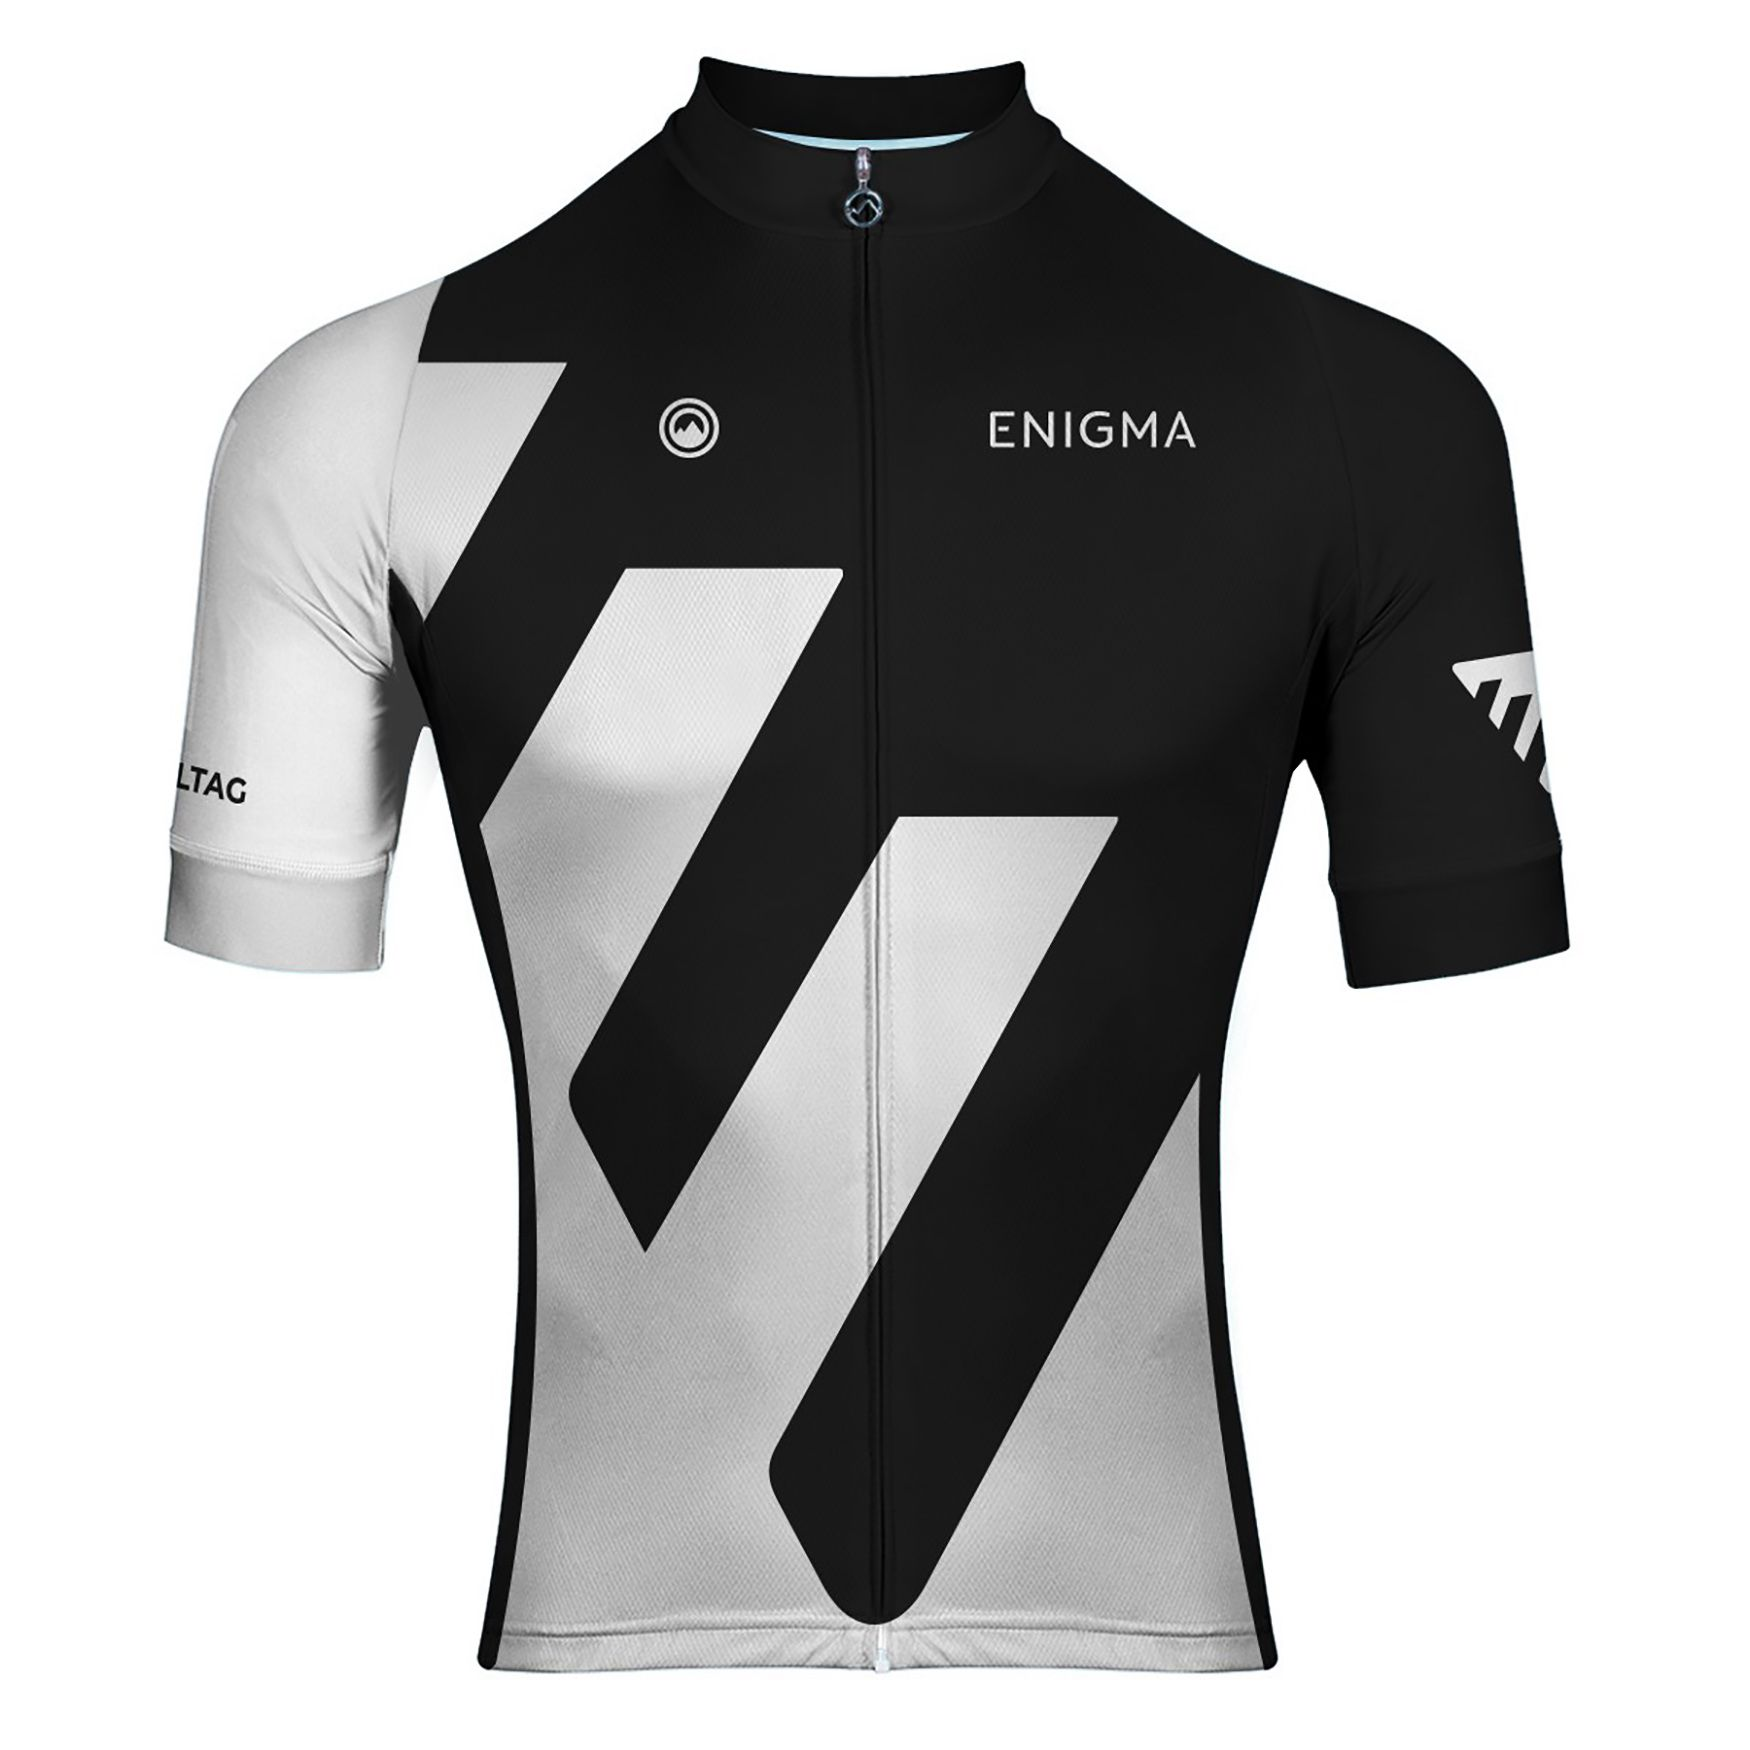 Enigma ss jersey design 1 features club fit high